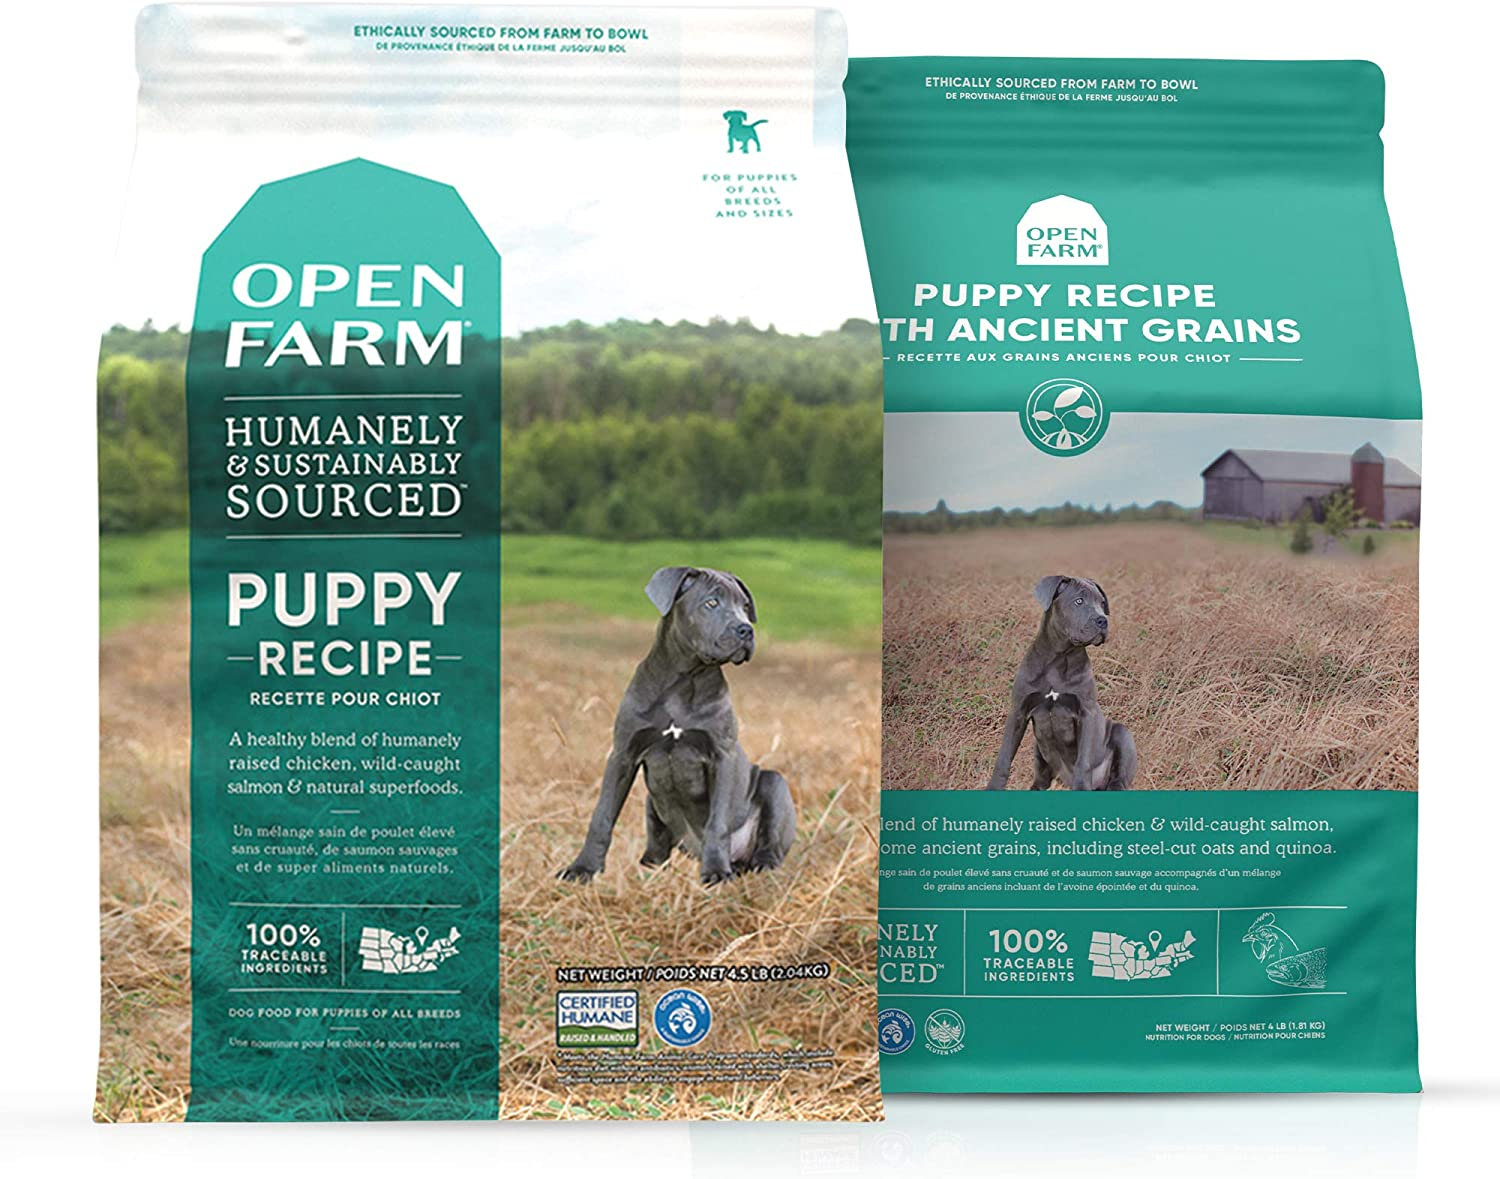 Open Farm Dry Puppy Dog Food Bundle, Grain-Free & Ancient Grain Recipe, 100% Humanely Raised Meat Recipe for Puppies with Non-GMO Superfoods and No Artificial Flavors or Preservatives